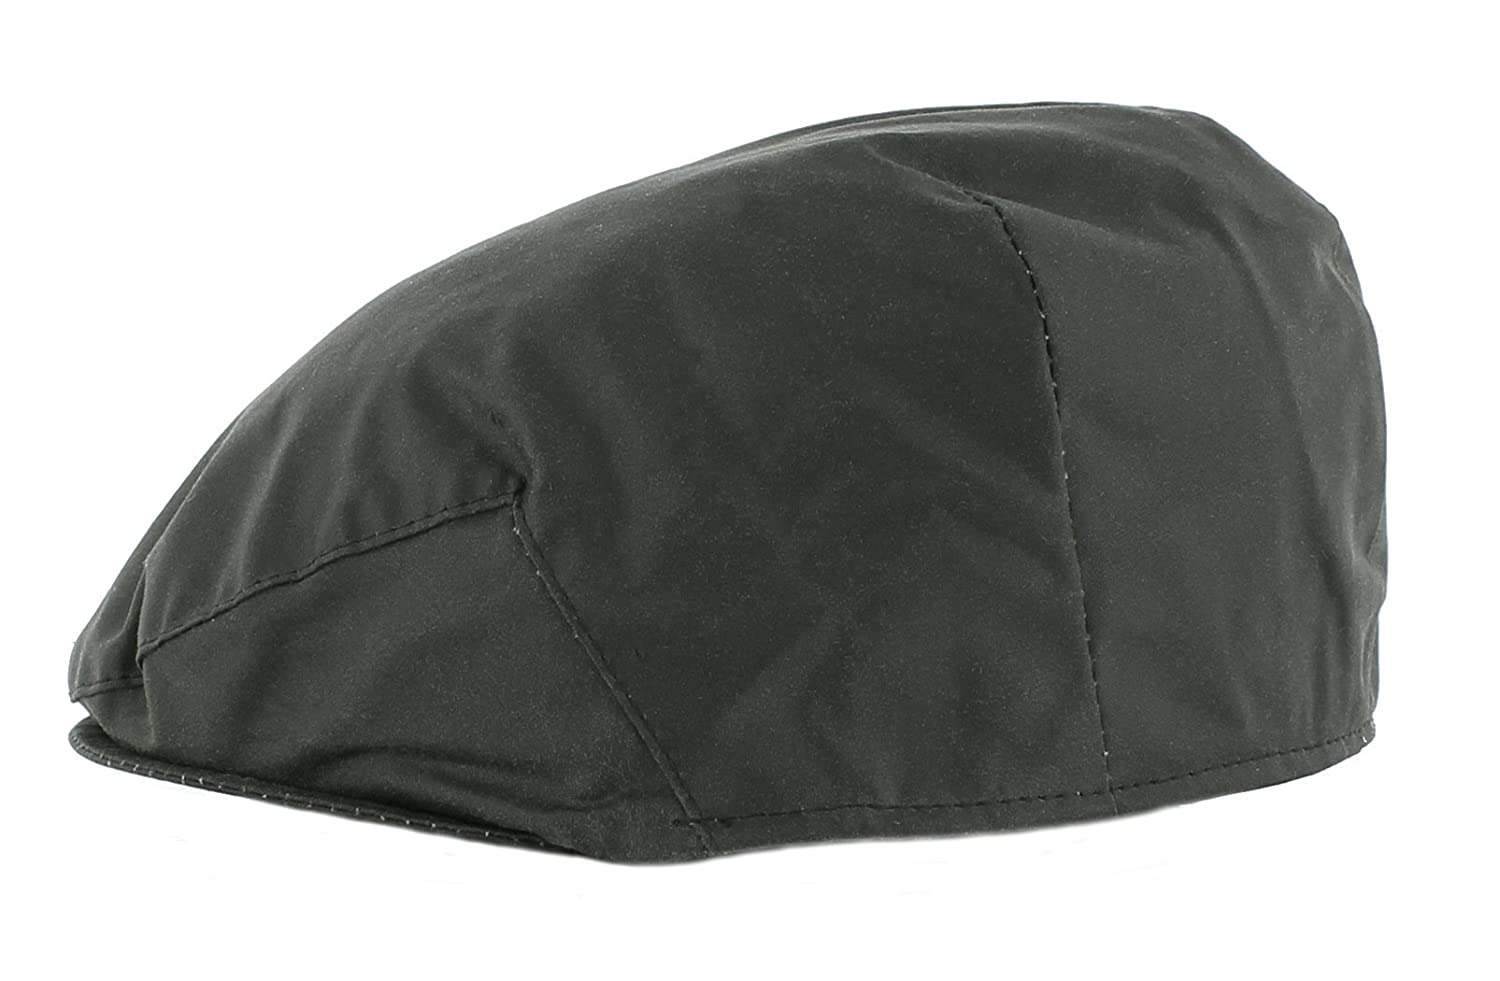 The Hat Company Mens Wax Flat Cap with Thinsulate Lining (7509)